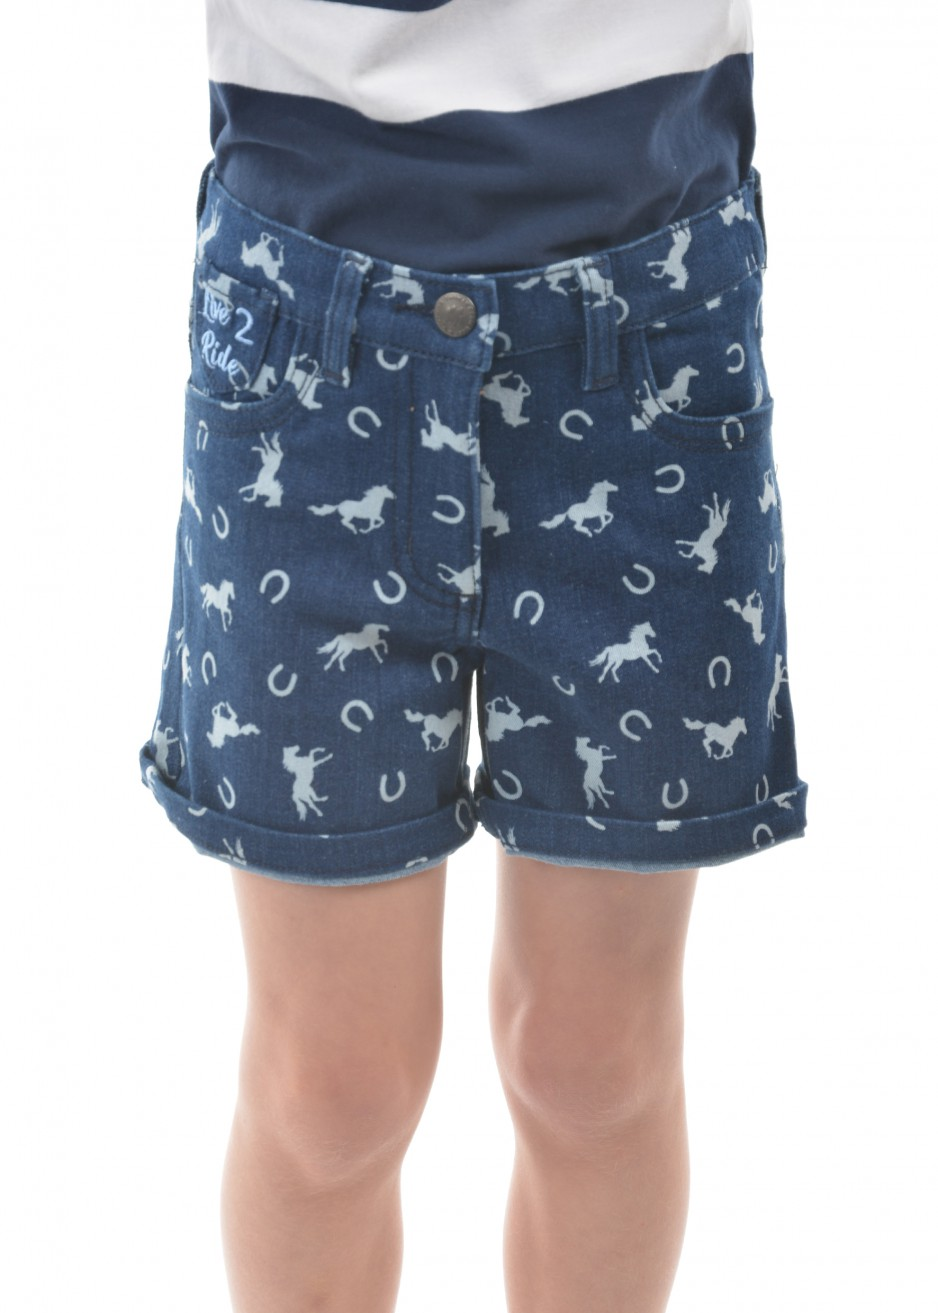 GIRLS HORSE PRINT DENIM SHORTS